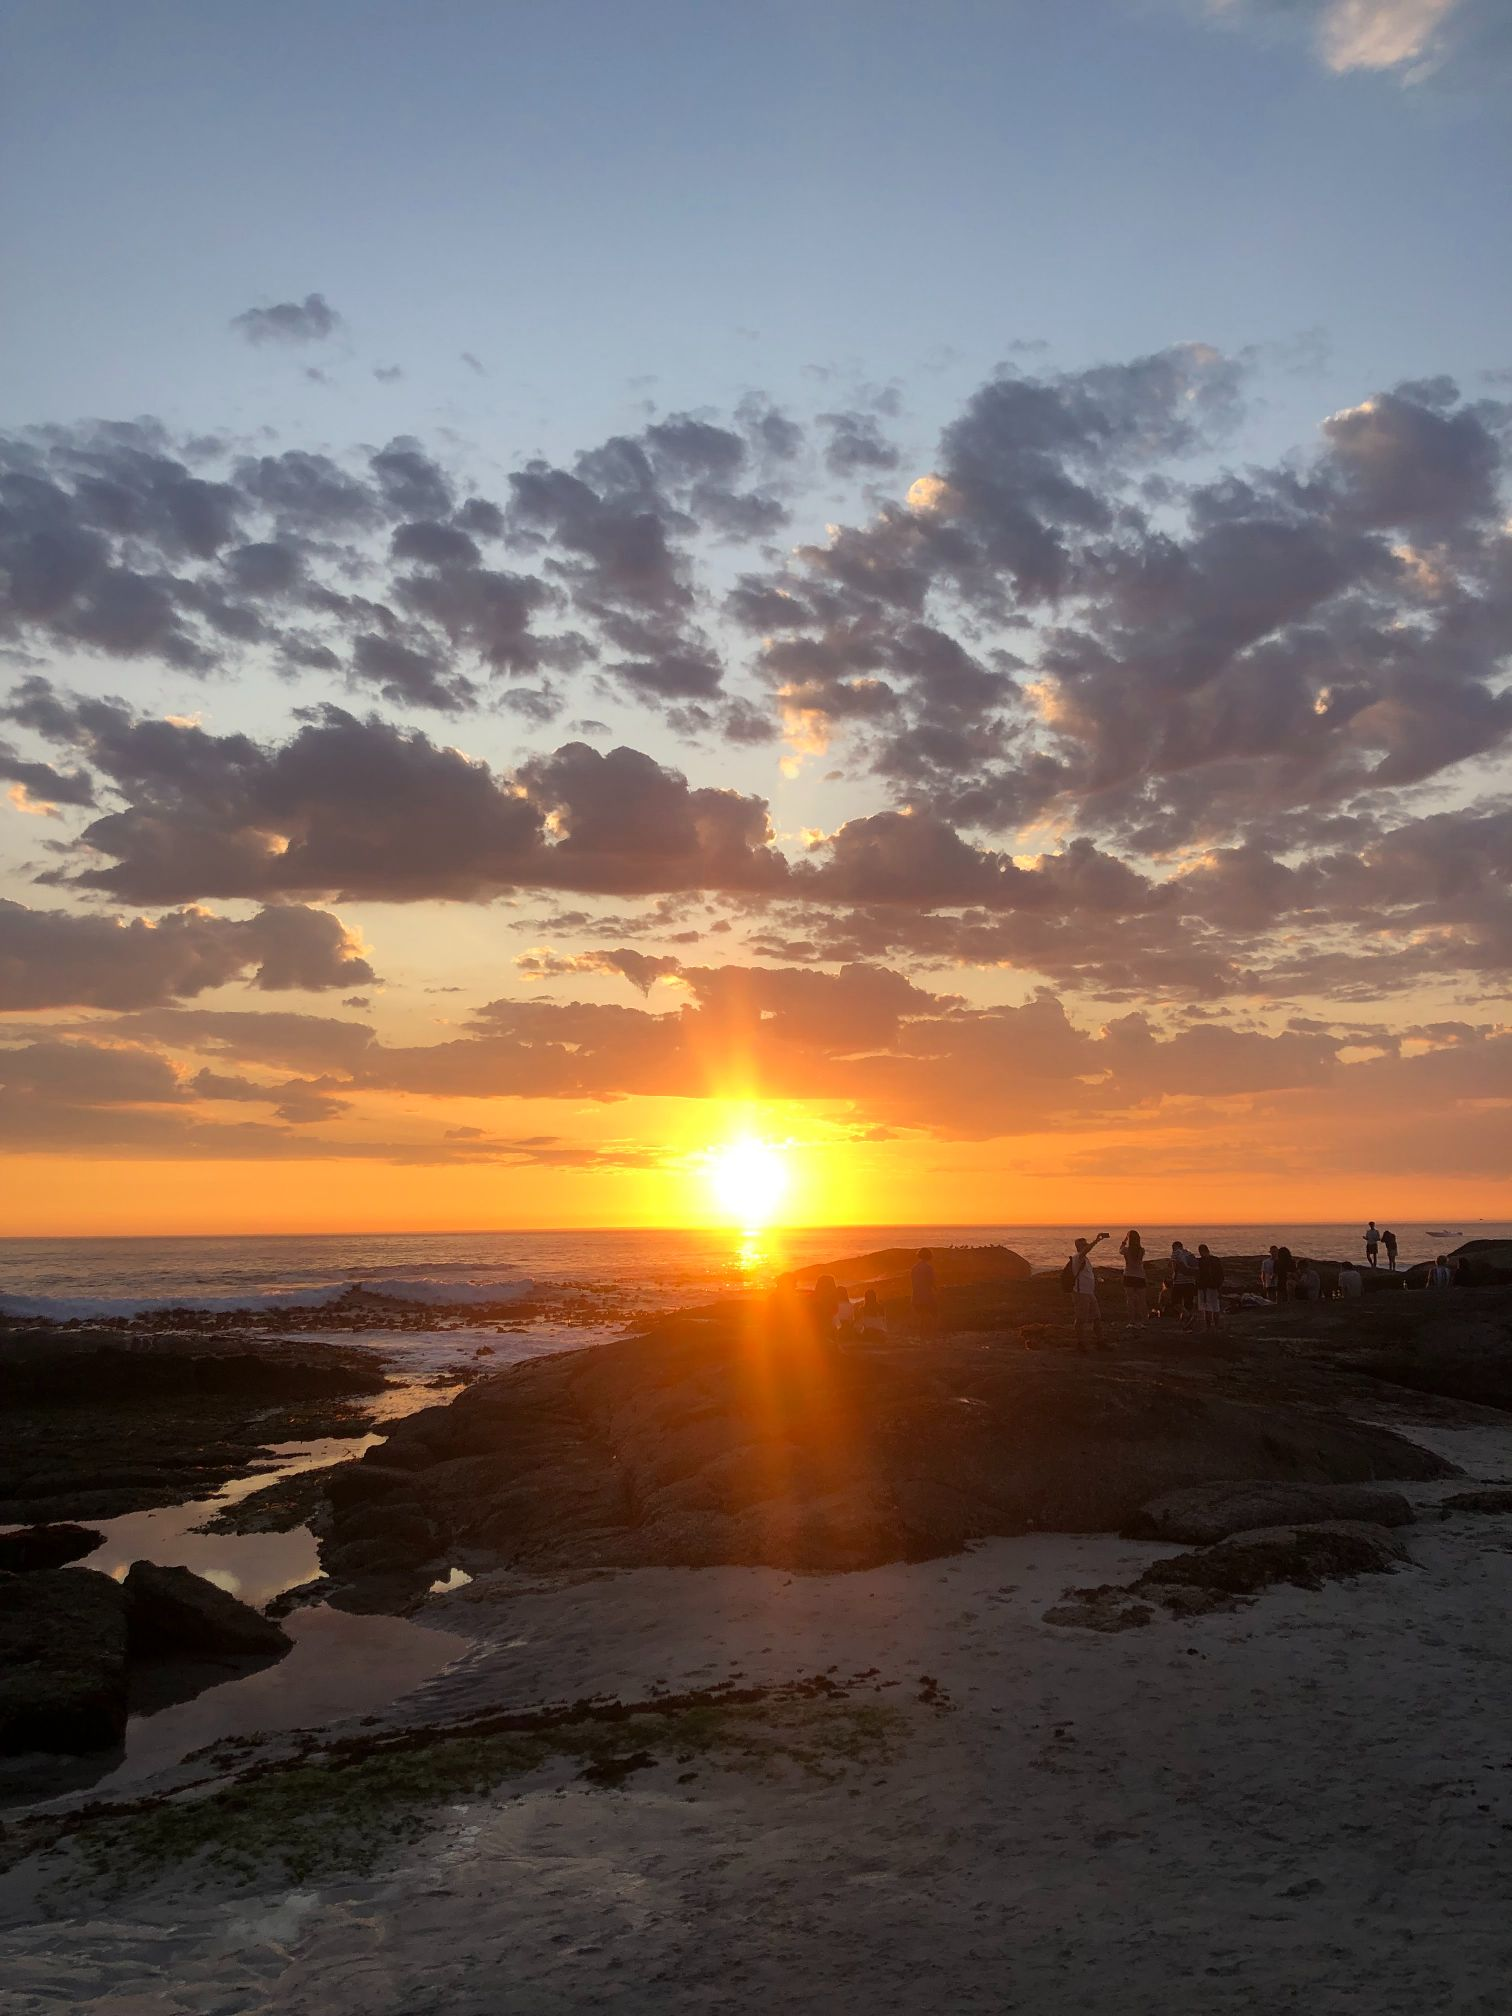 Sunset Camps Bay beach Cape Town